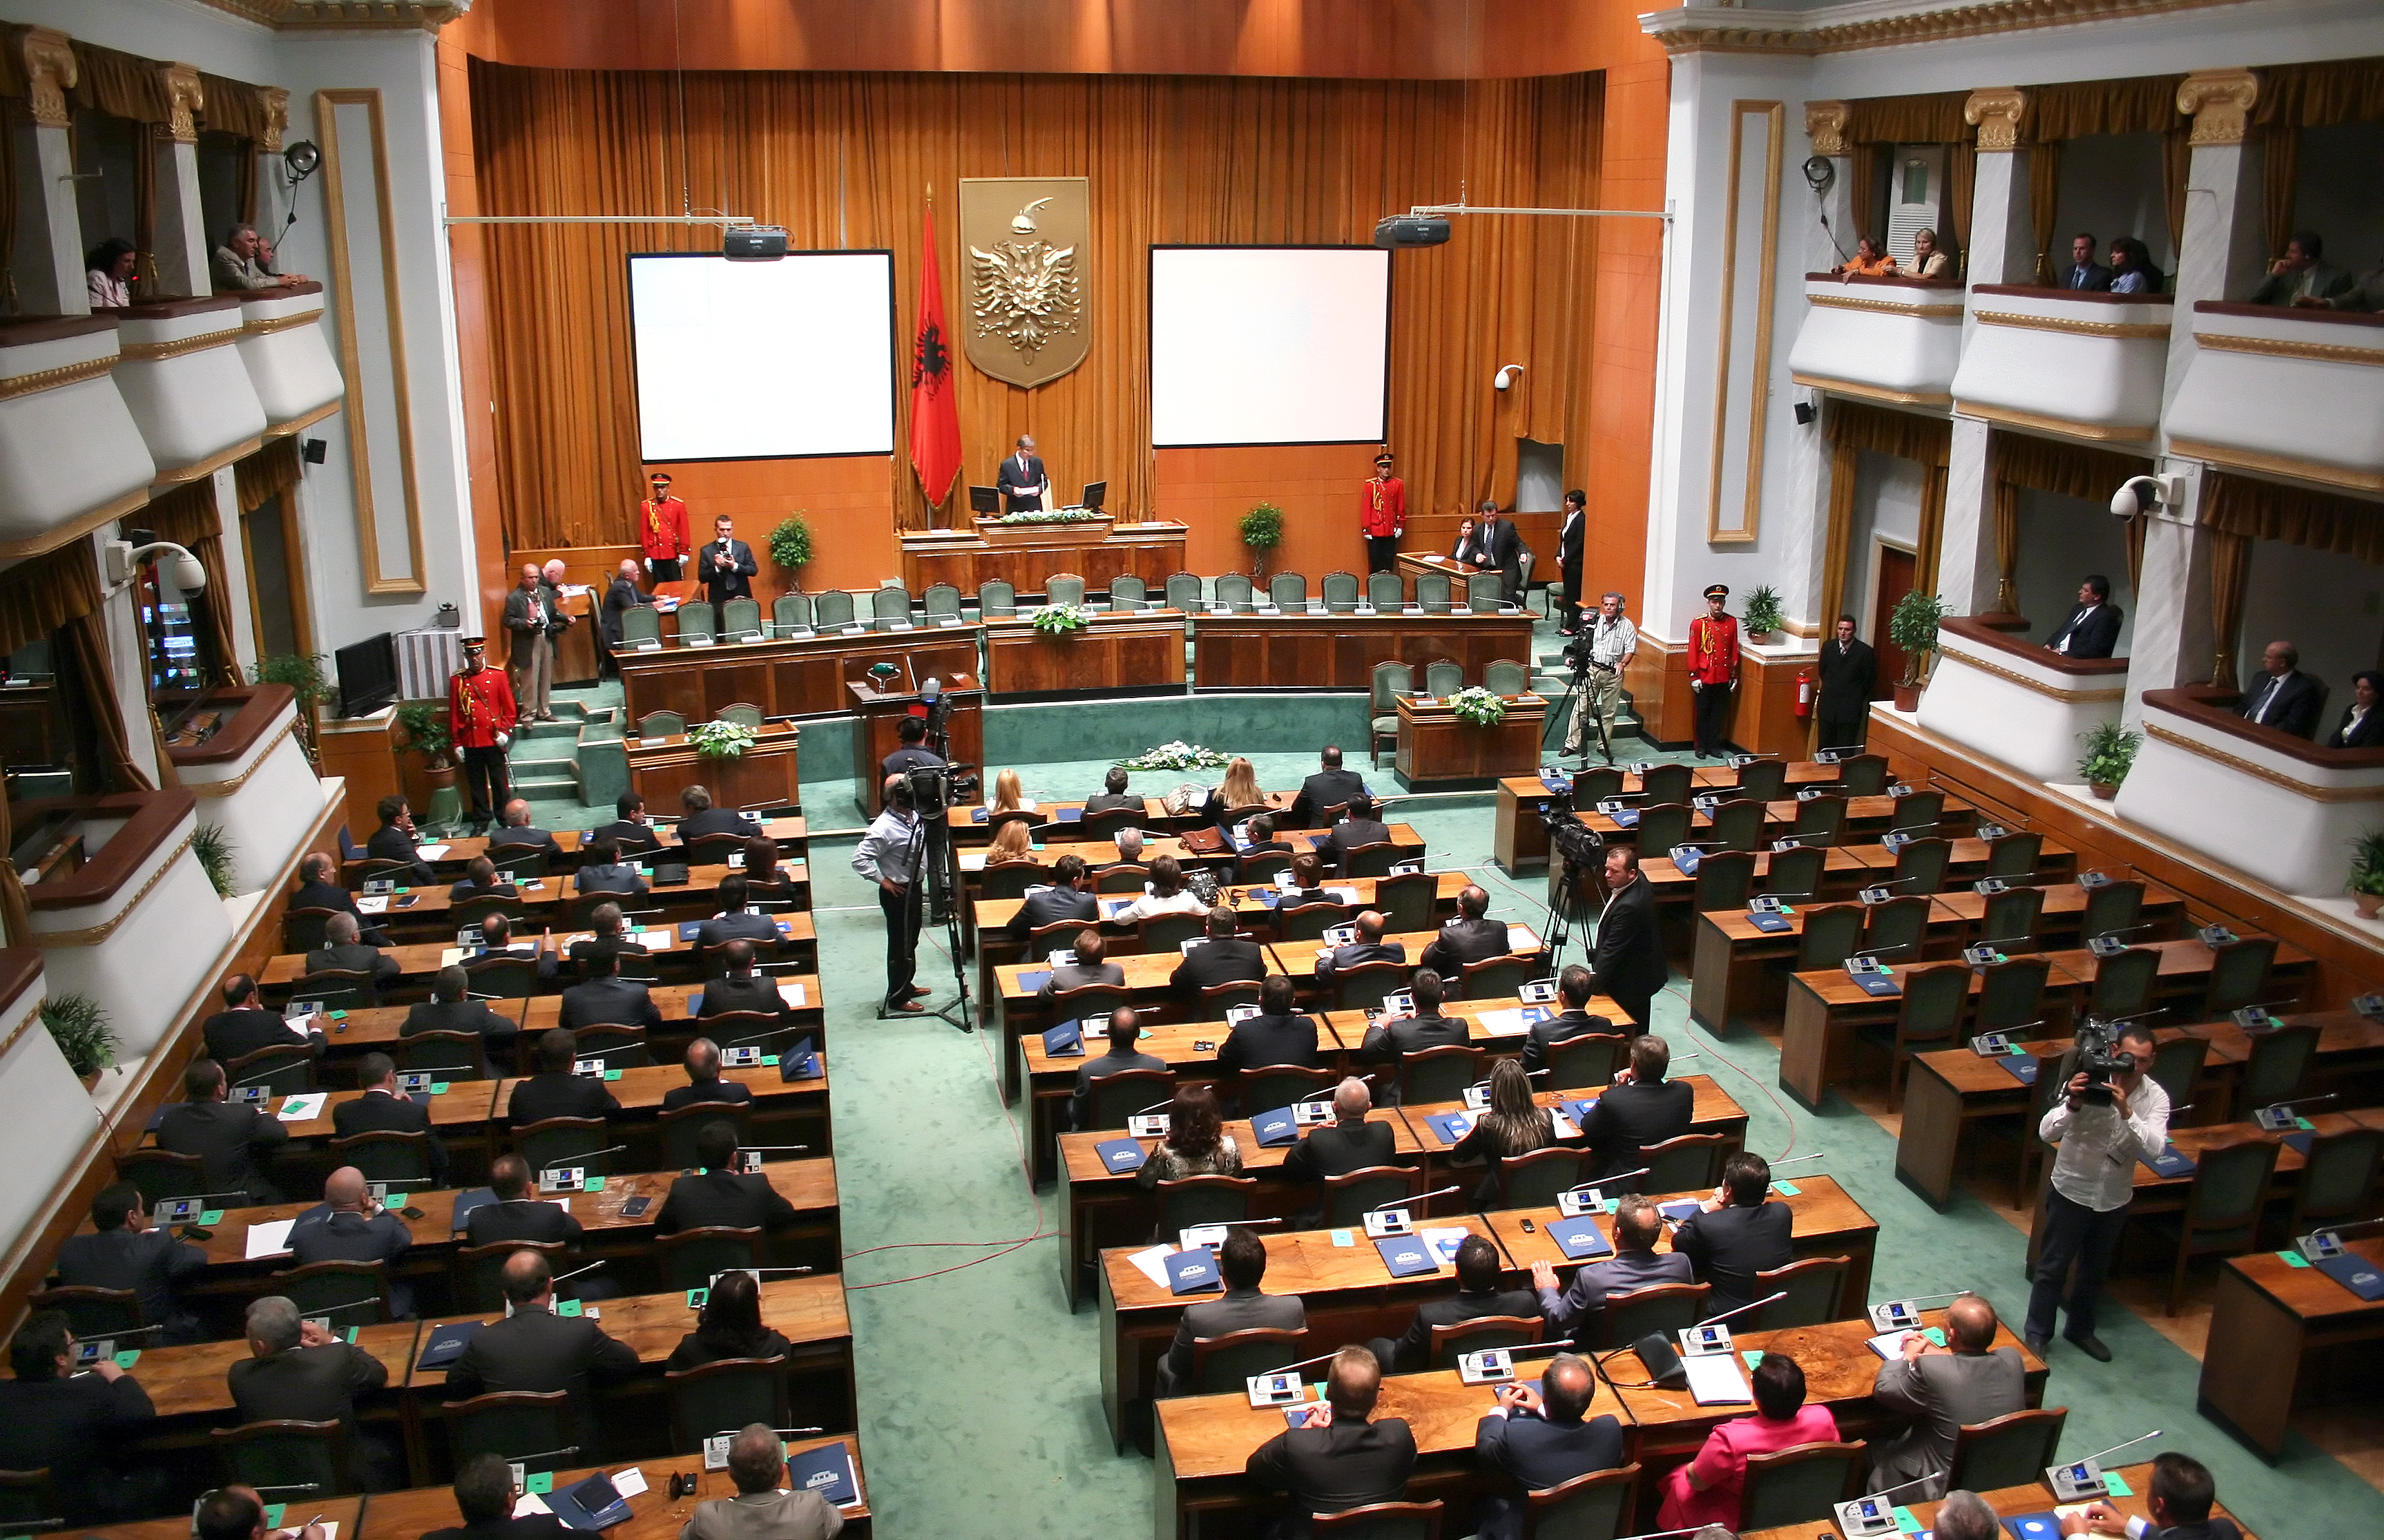 Albanian authorities pursue highly problematic media laws despite public outcry